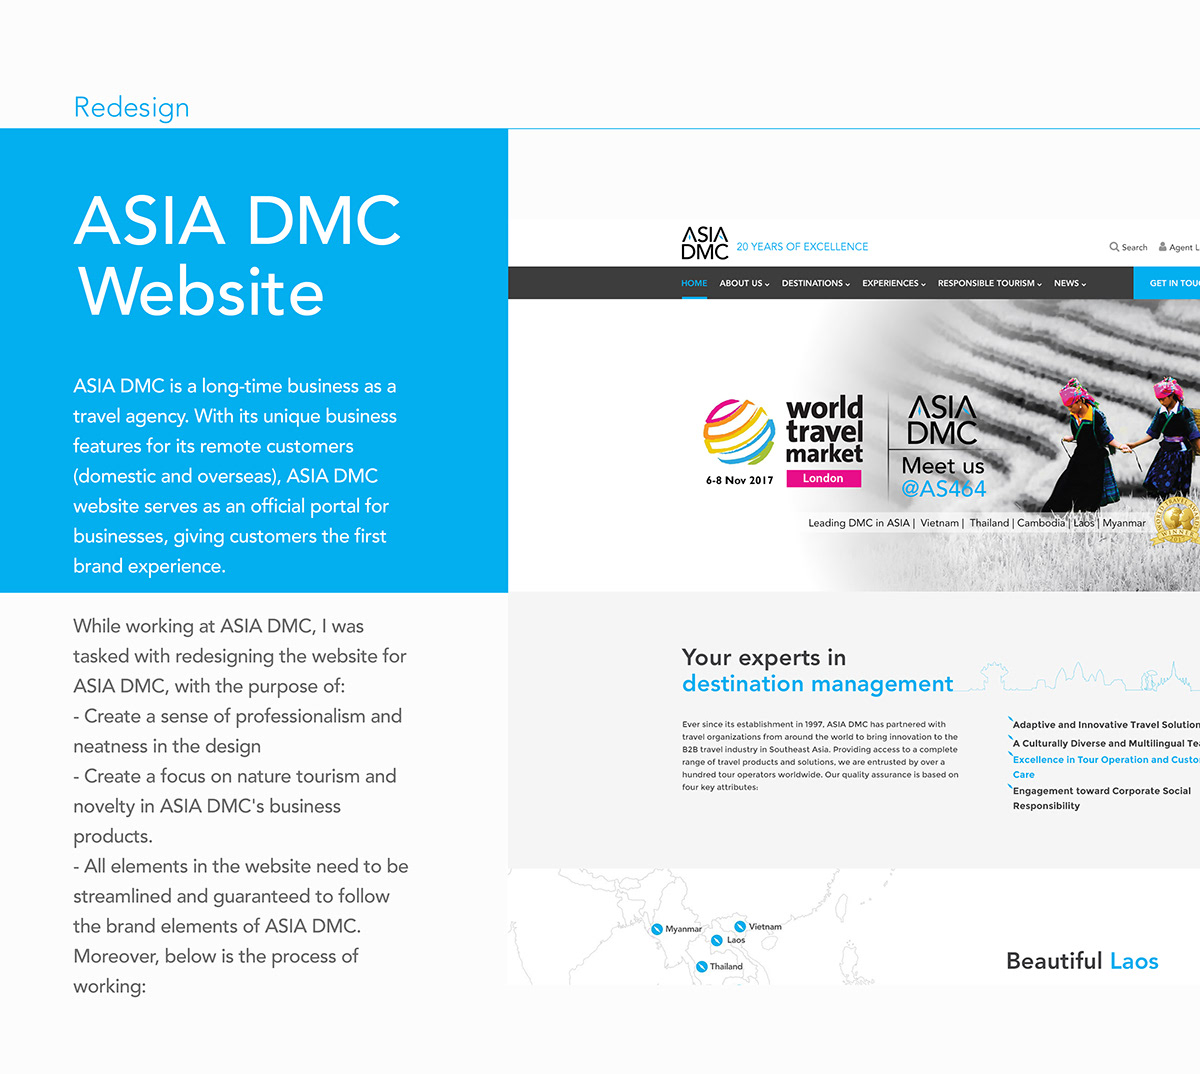 Redesign ASIA DMC - A Travel Agency Website on Student Show